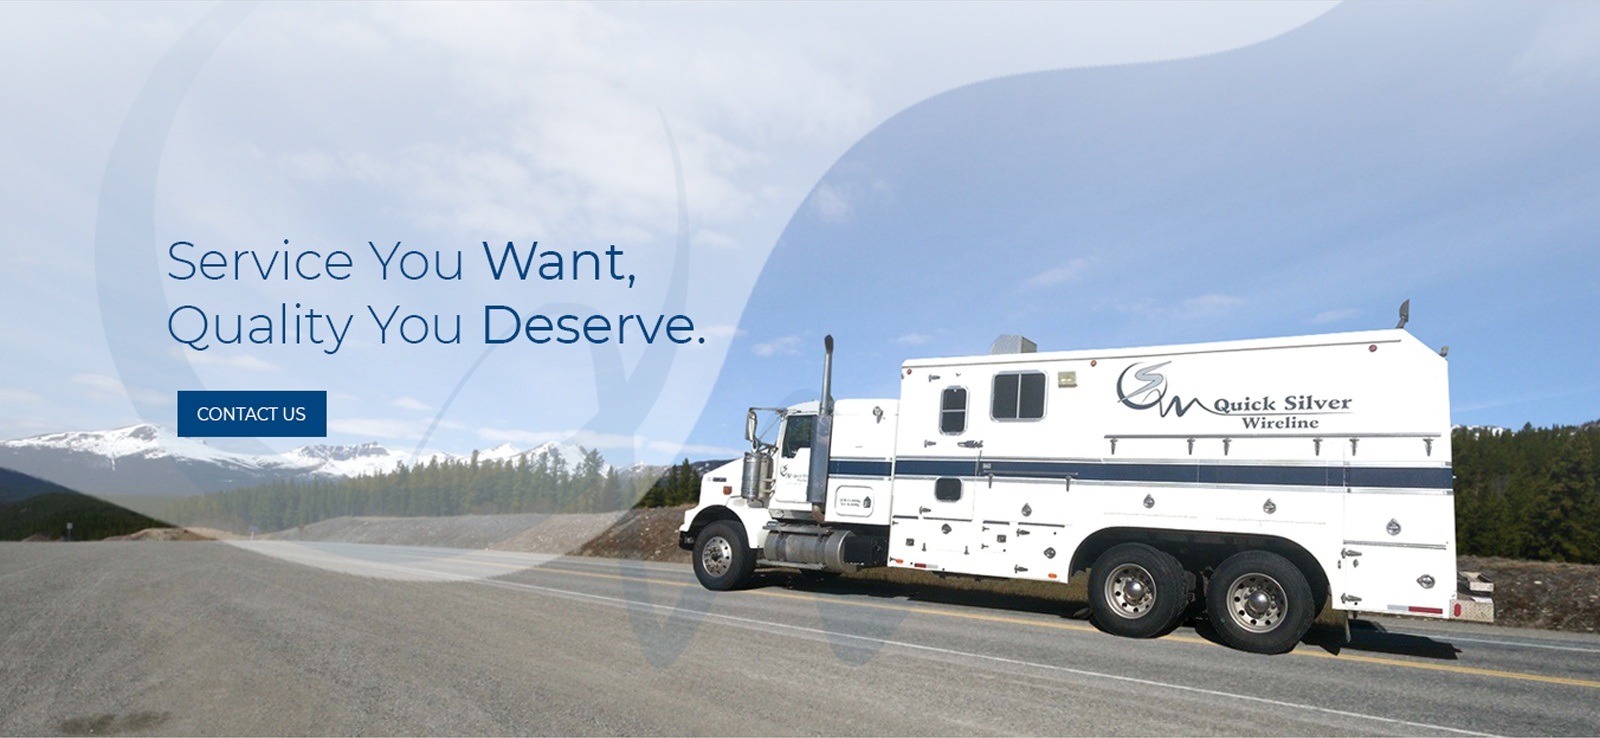 Services you Want, Quality You Deserve - Quick Silver Wireline